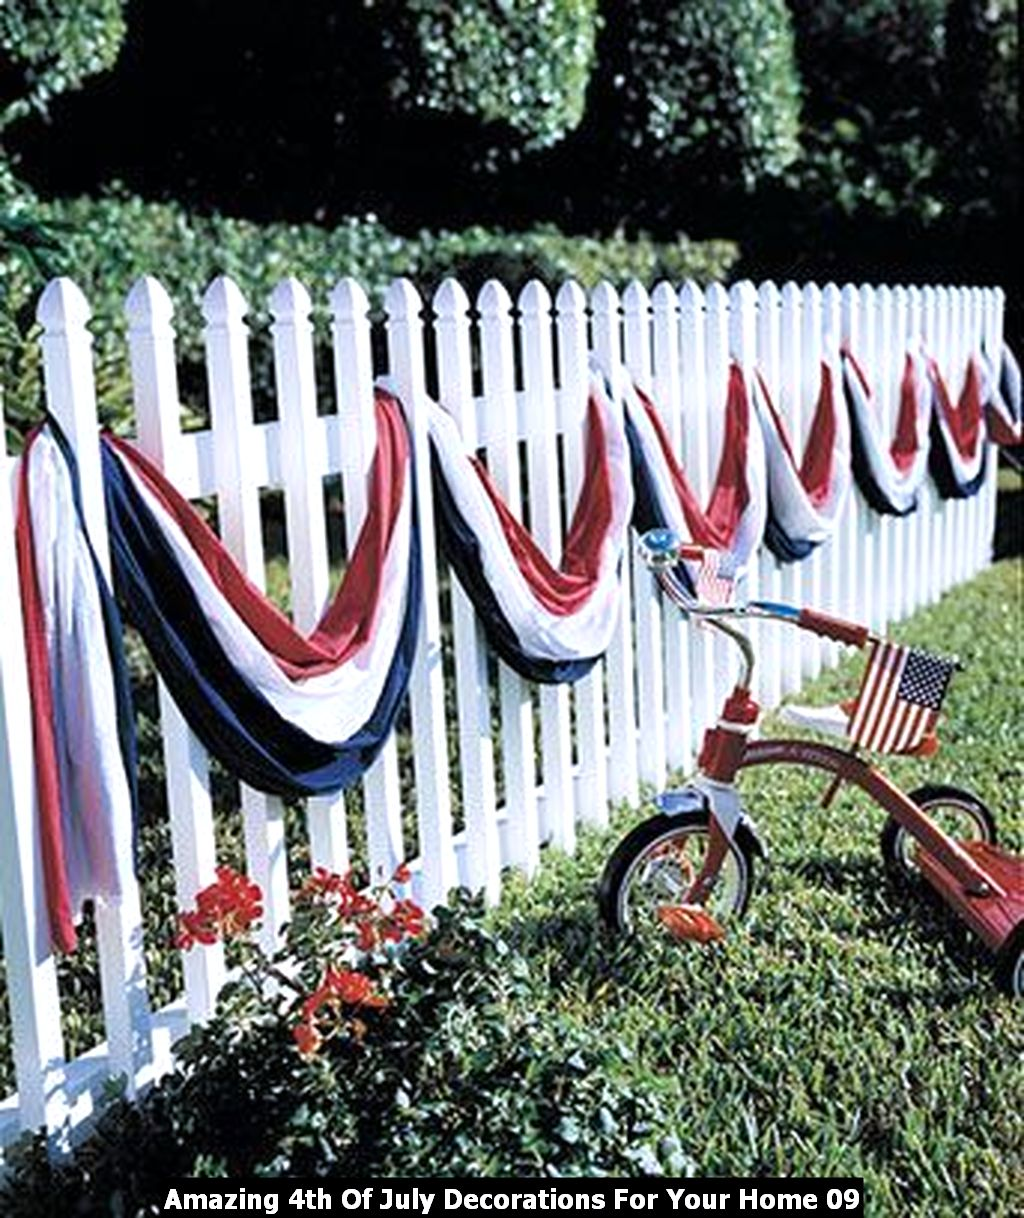 Amazing 4th Of July Decorations For Your Home 09